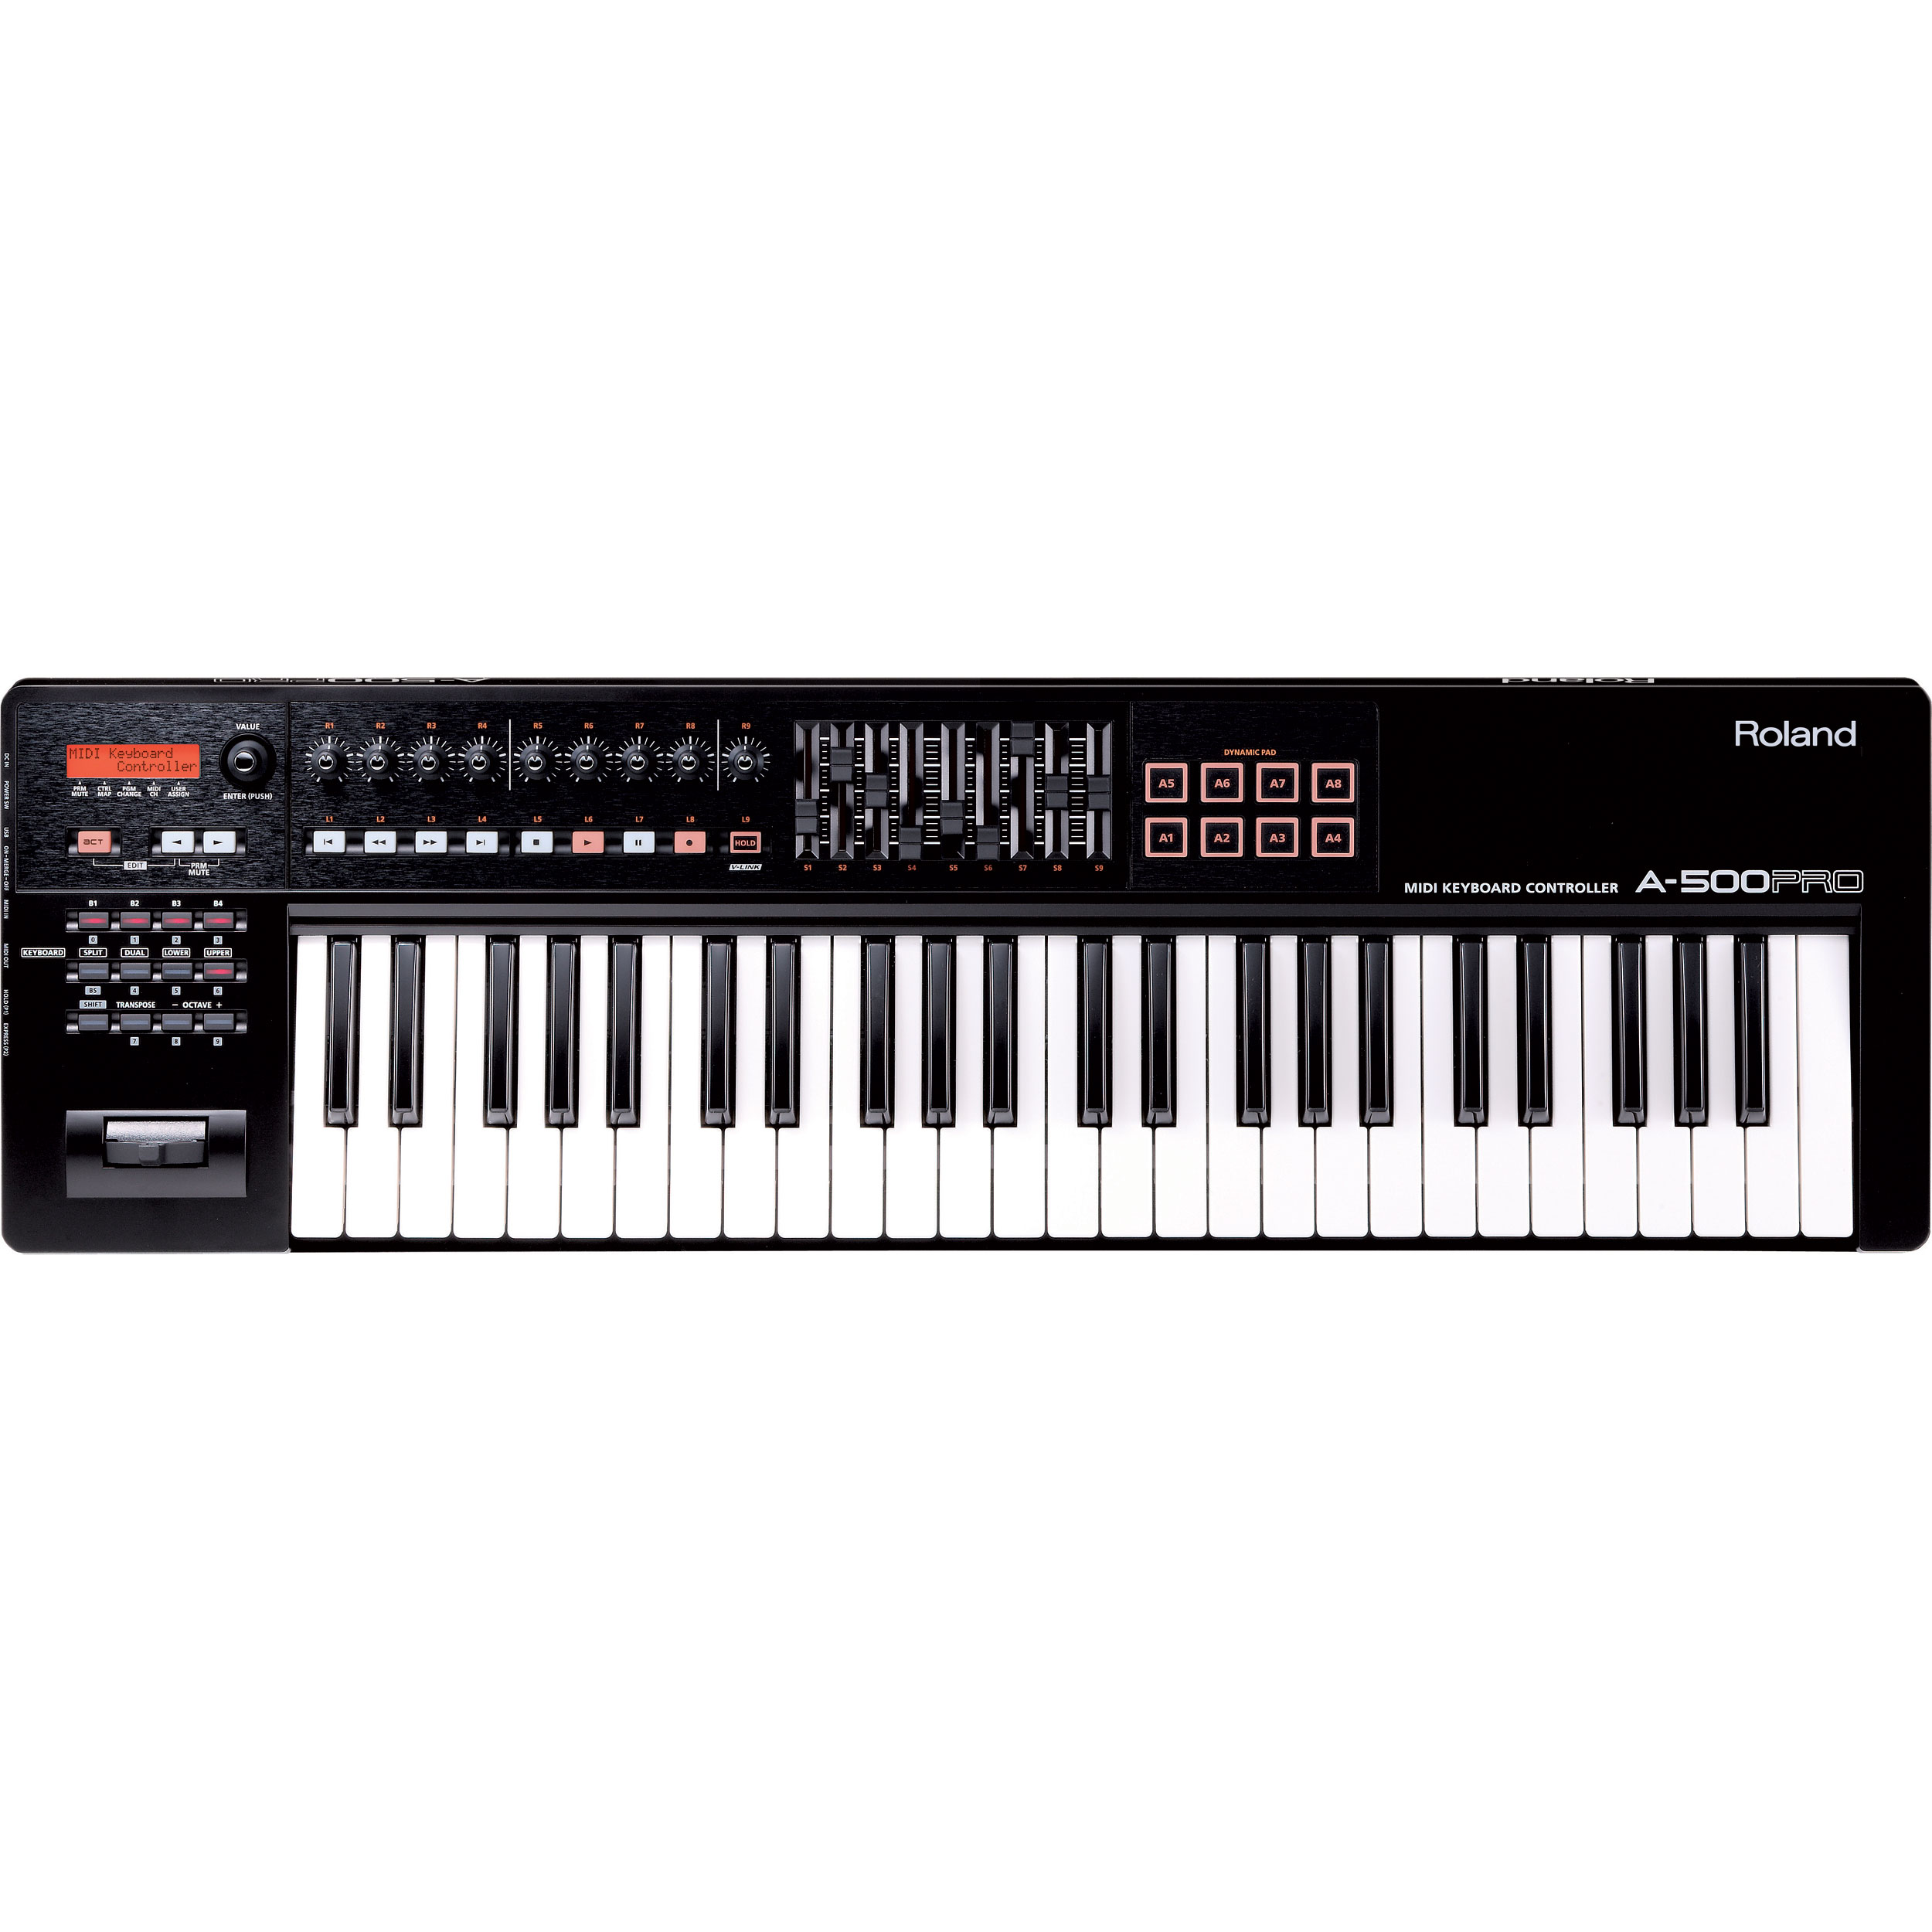 Roland A Pro Series 49 Key Pro Midi Keyboard Controller